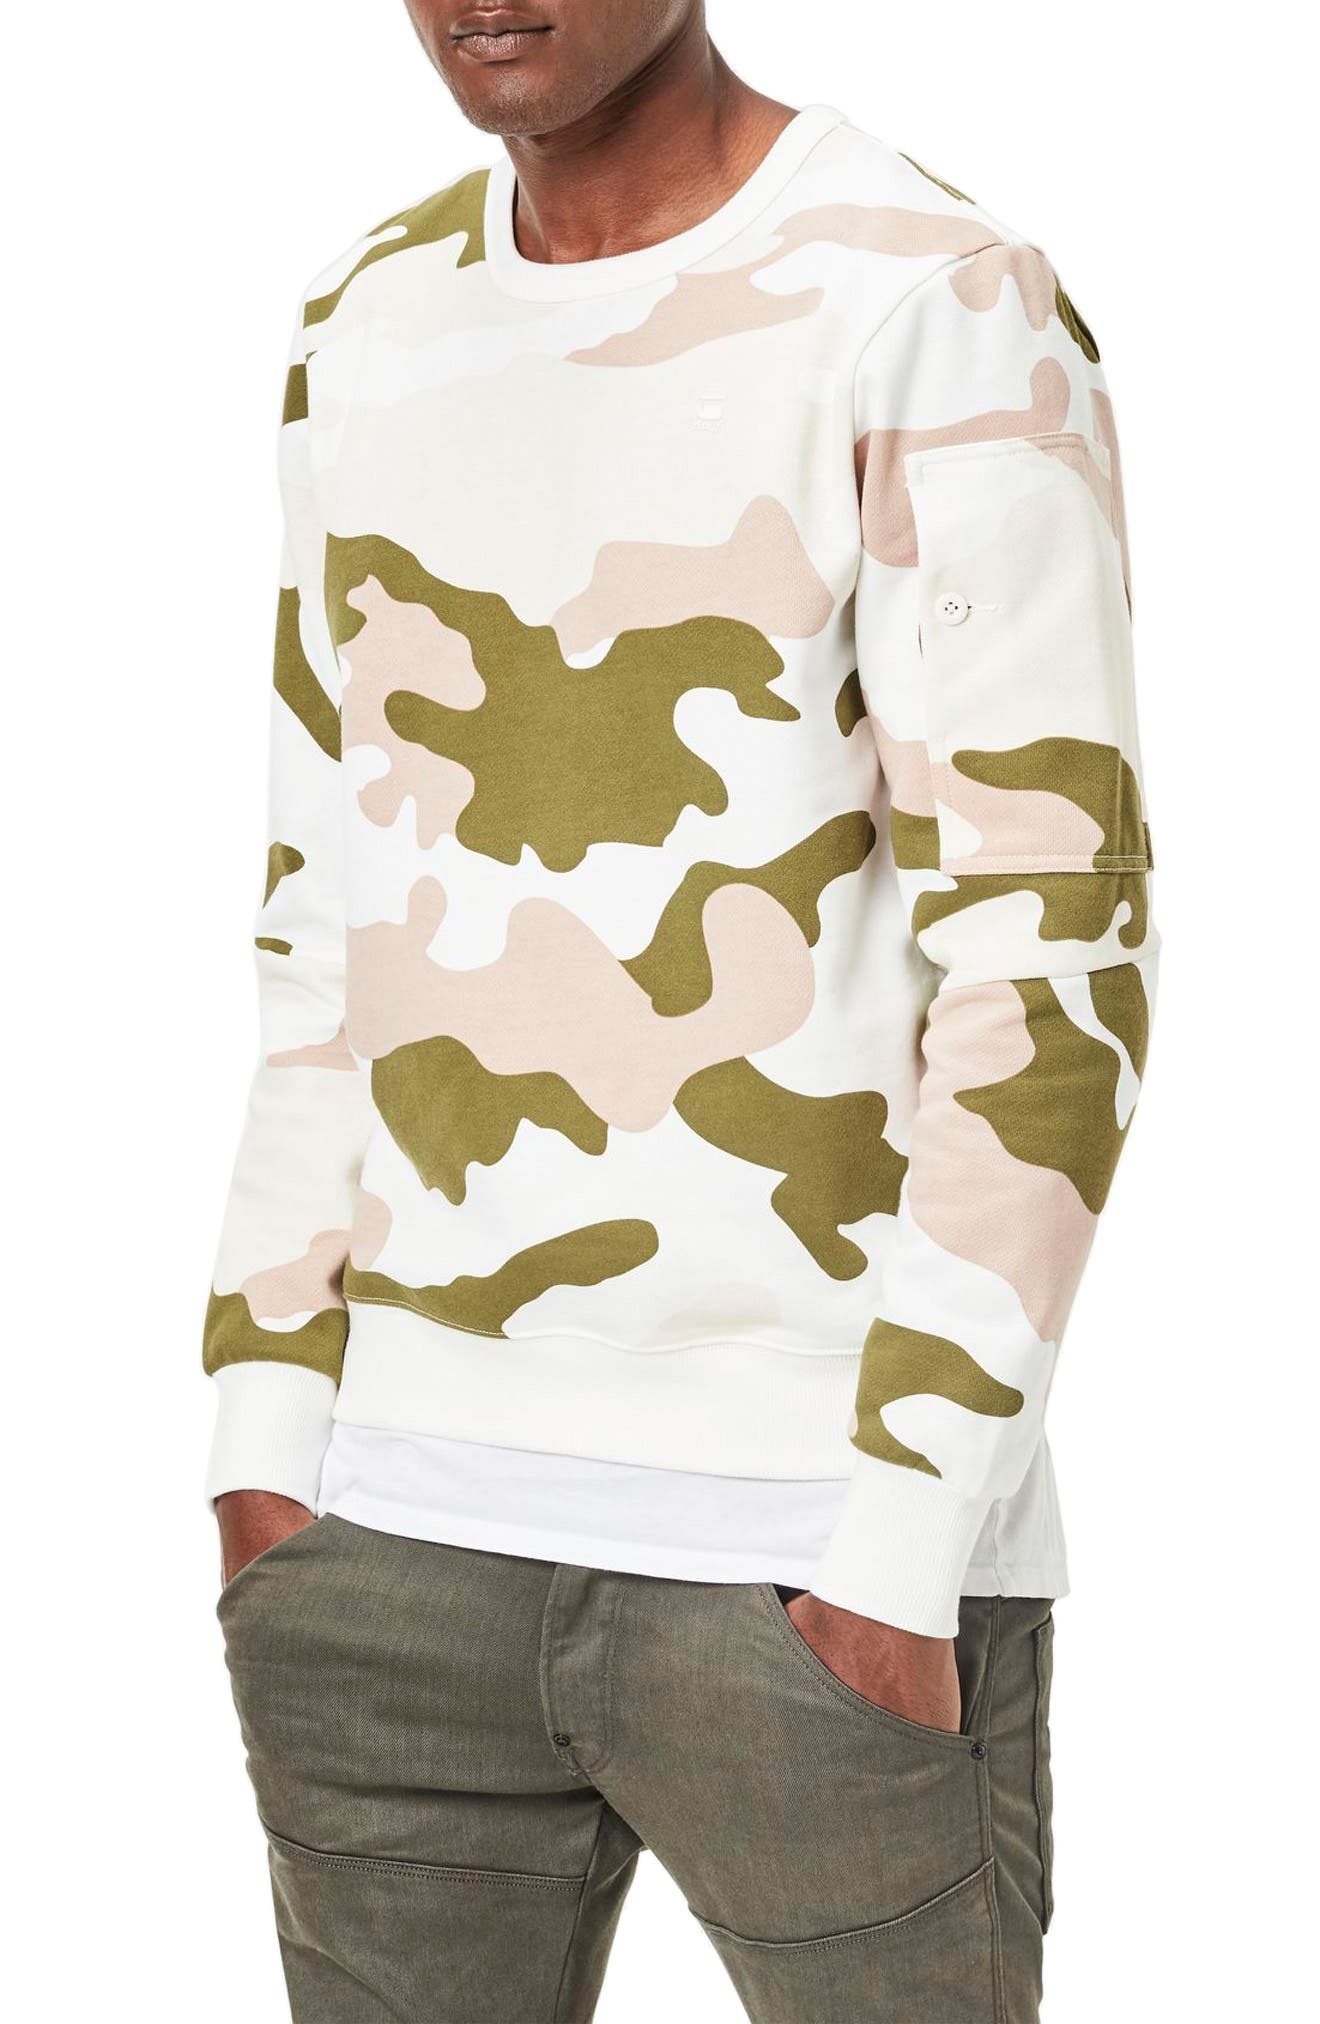 Stalt Camo Sweatshirt,                             Main thumbnail 1, color,